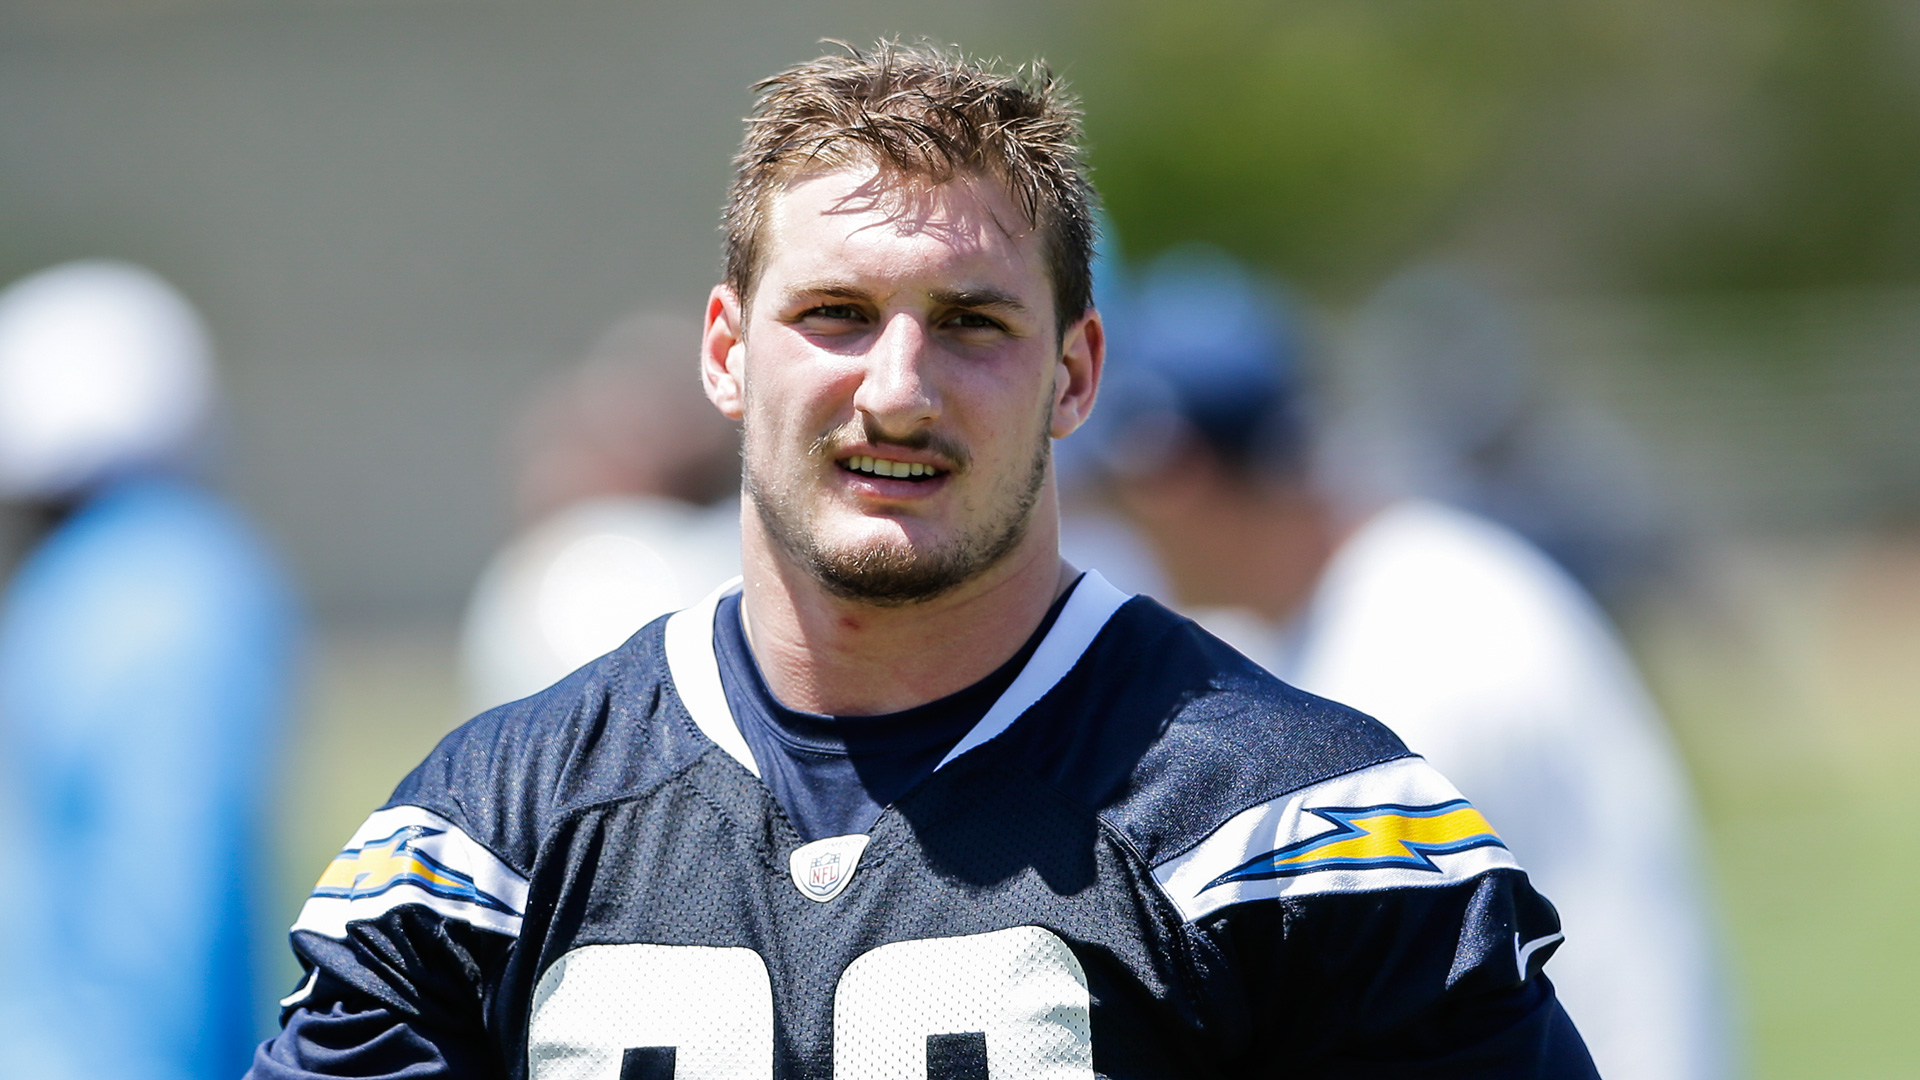 Chargers inability to sign Joey Bosa is embarrassing and shameful